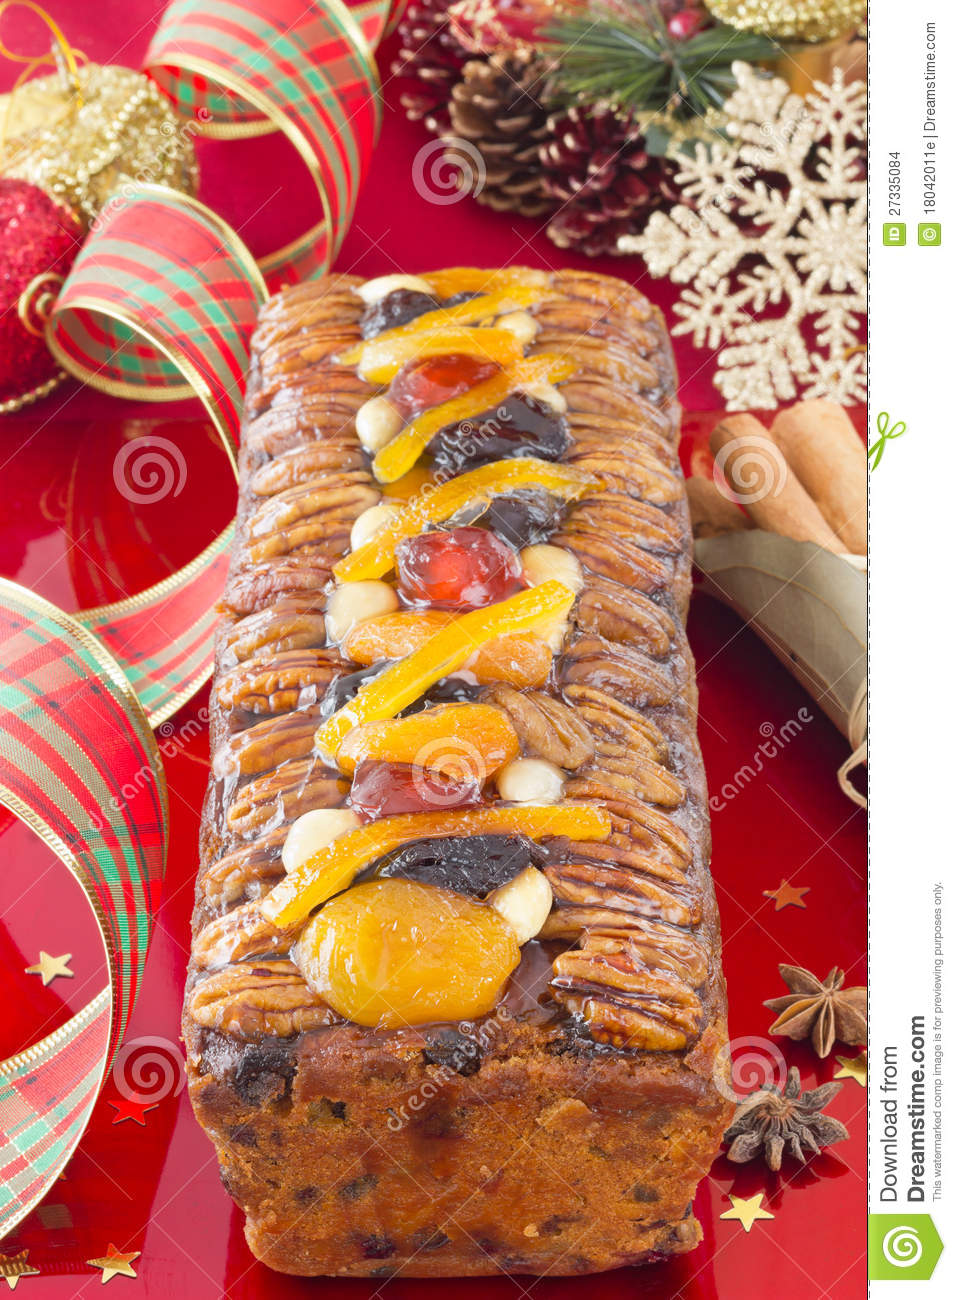 Christmas fruit cake with festive decoration stock images for Baking oranges for christmas decoration